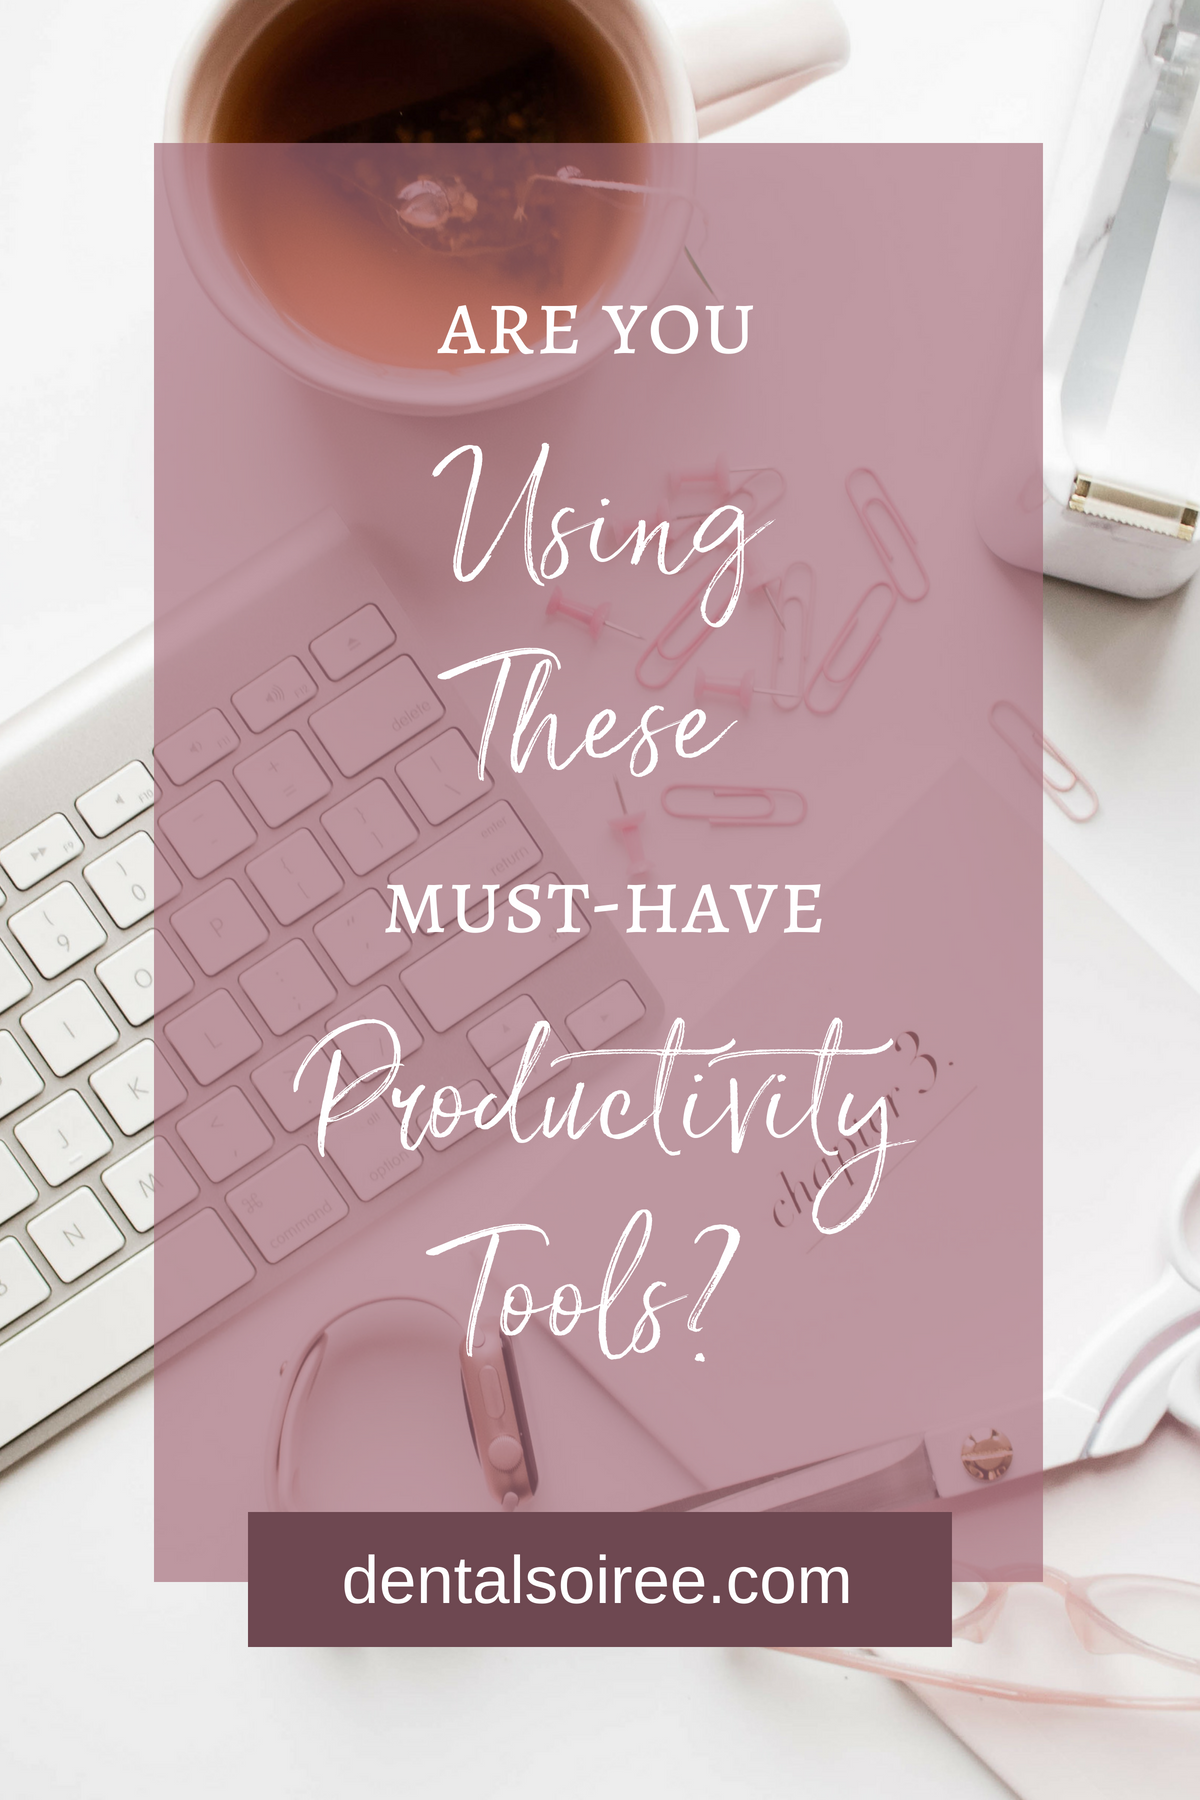 Are You Using These Must-Have Productivity Tools?